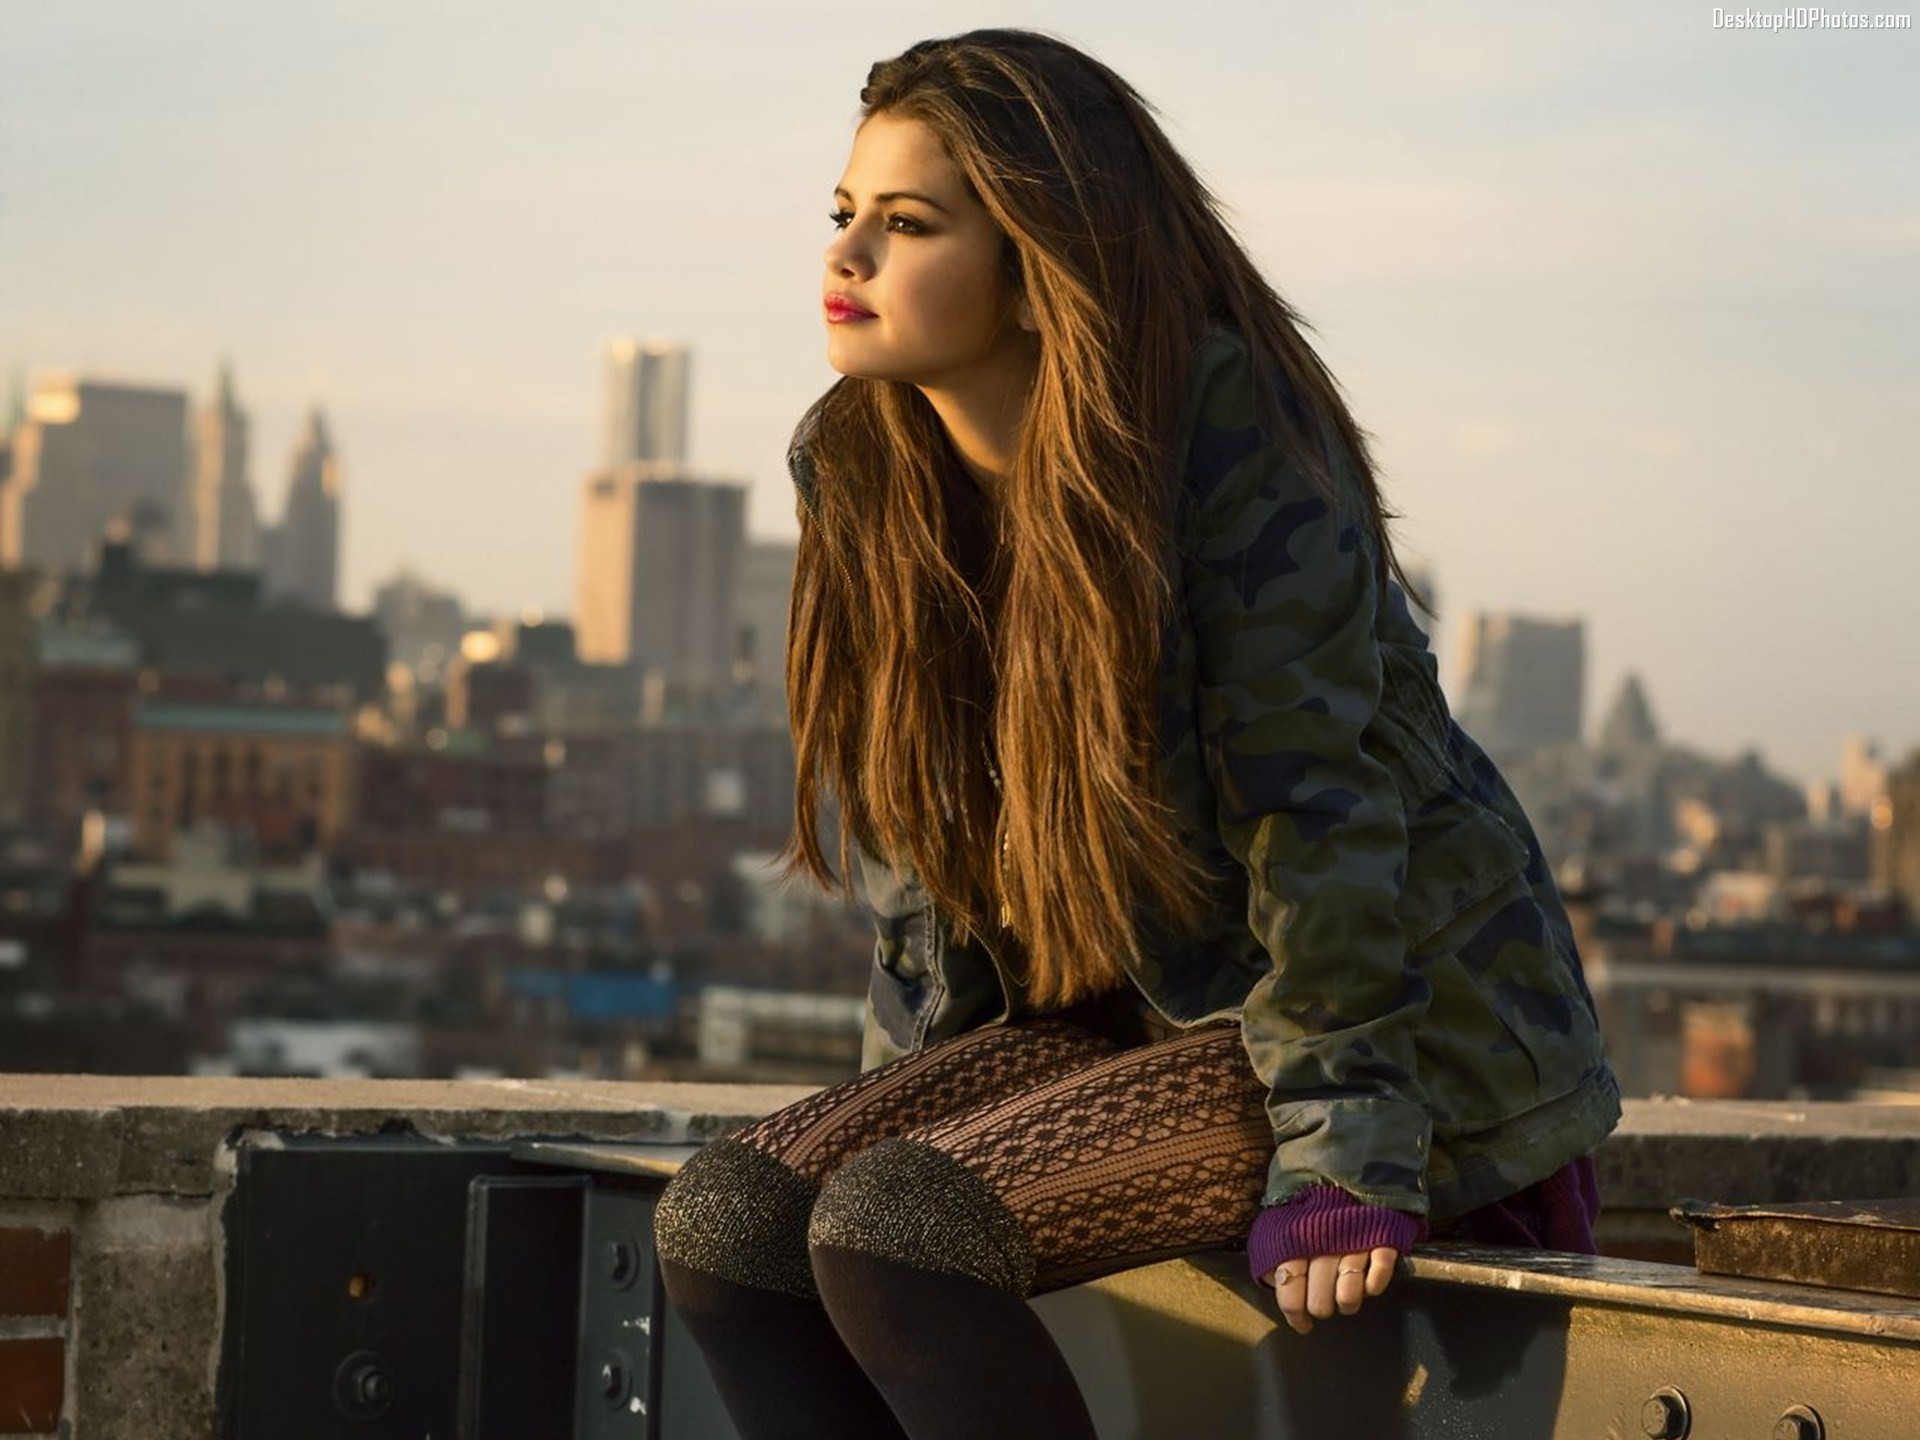 Selena Gomez is closing the book for the last time on chapters of her 1920x1440